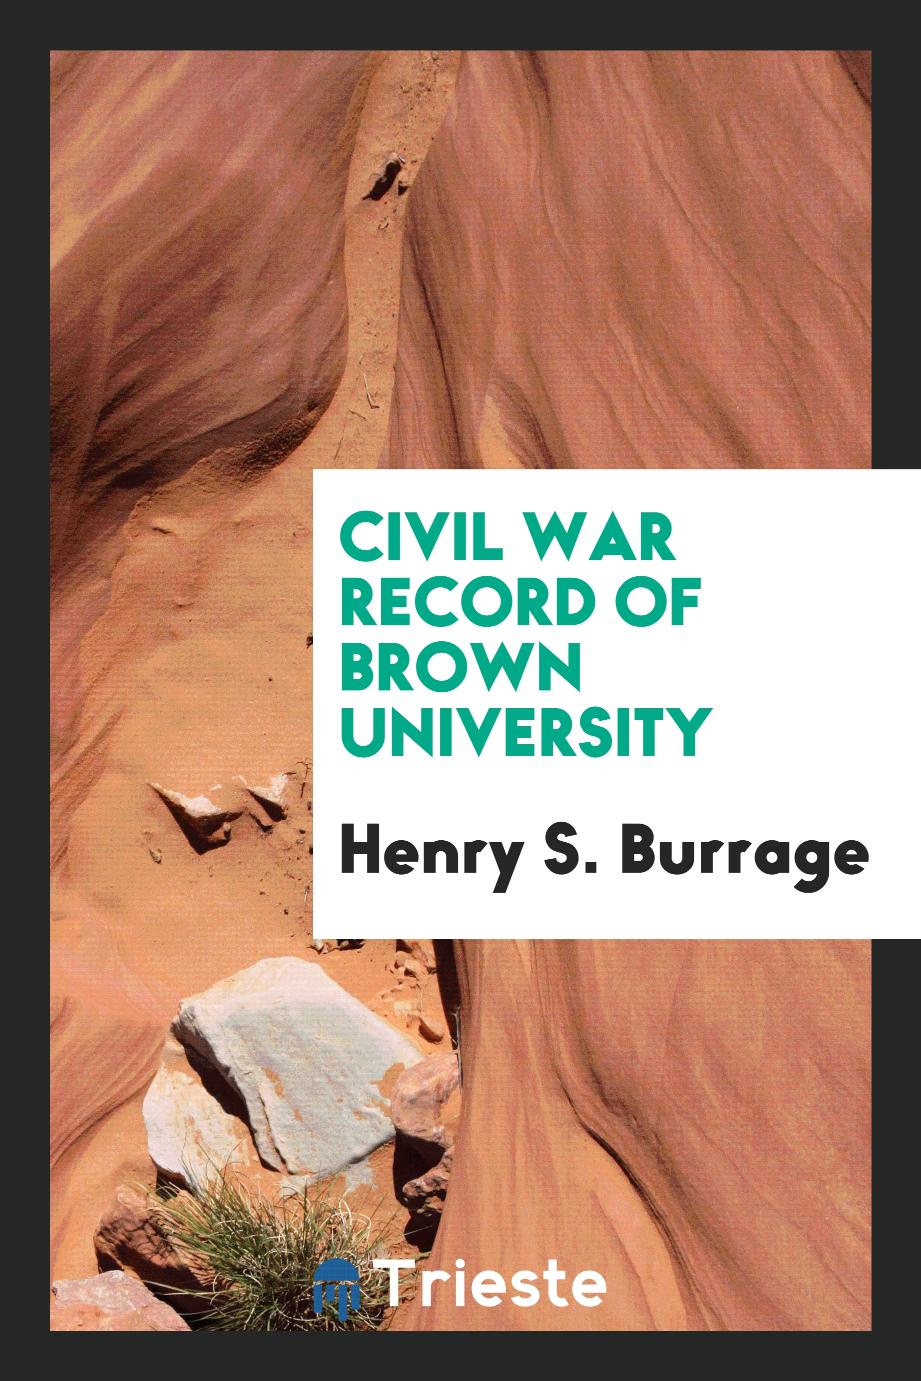 Henry S. Burrage - Civil war record of Brown University